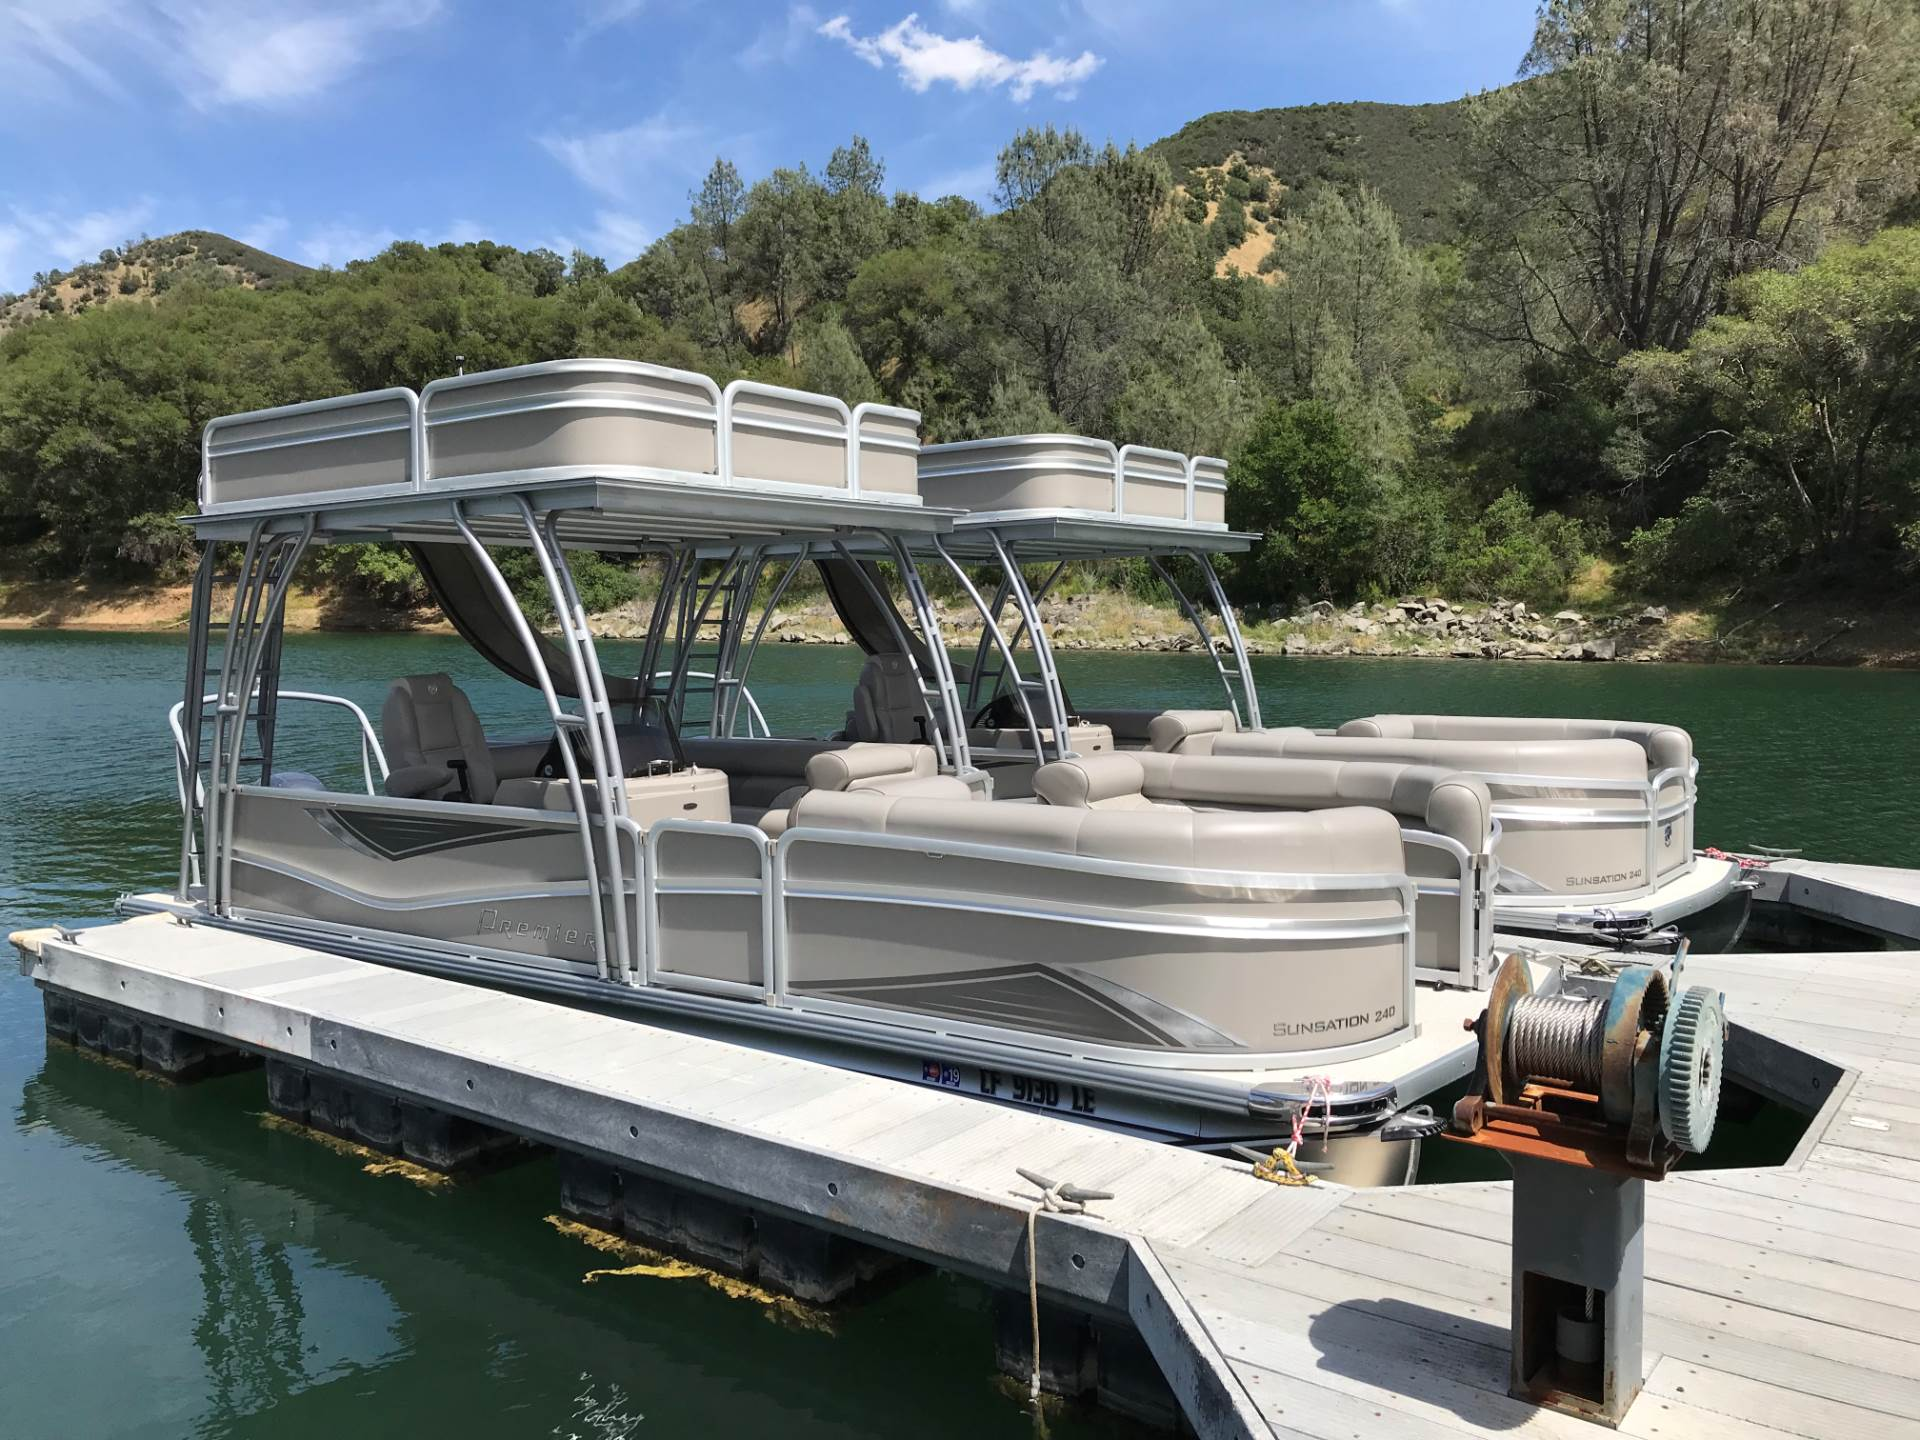 2018 Premier 240 SunSation in Lakeport, California